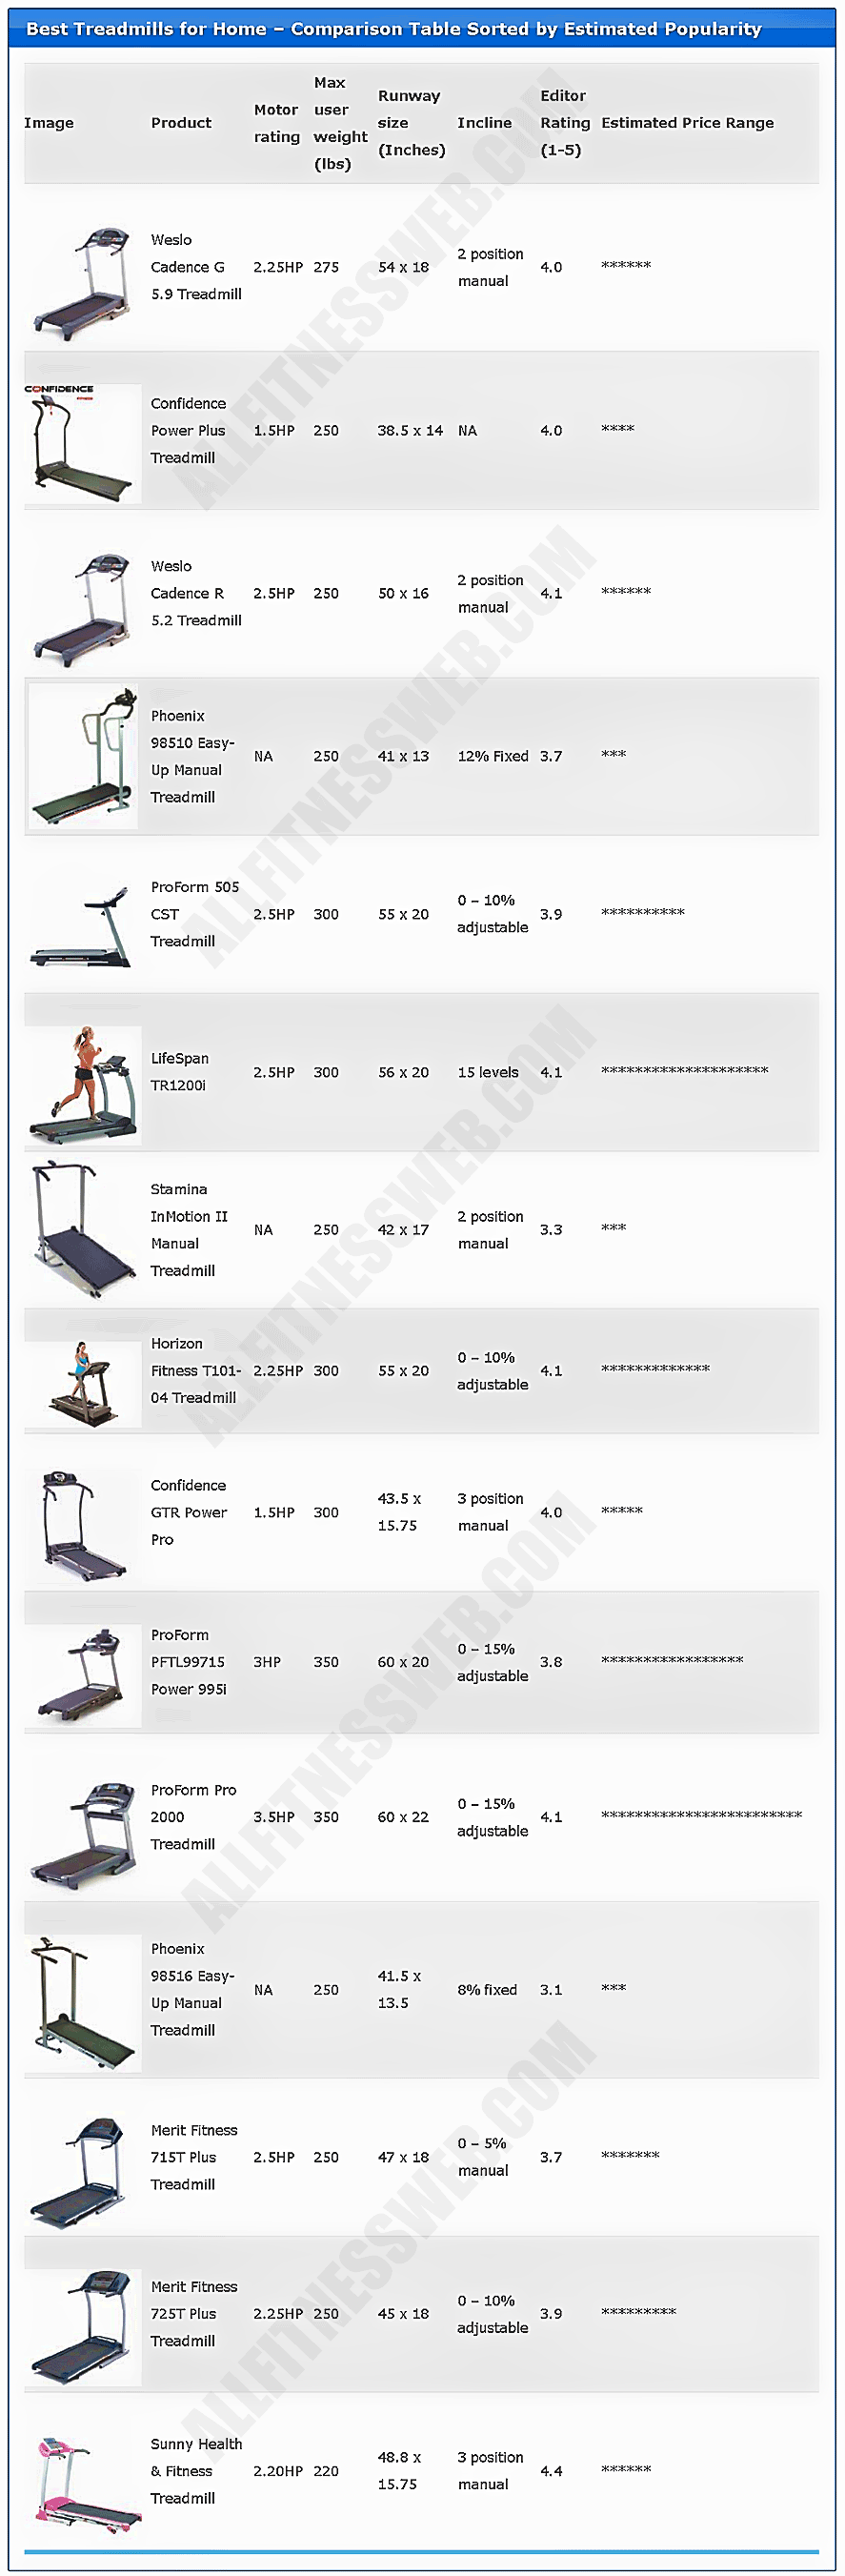 Best-treadmills-for-home-comparison-table-2